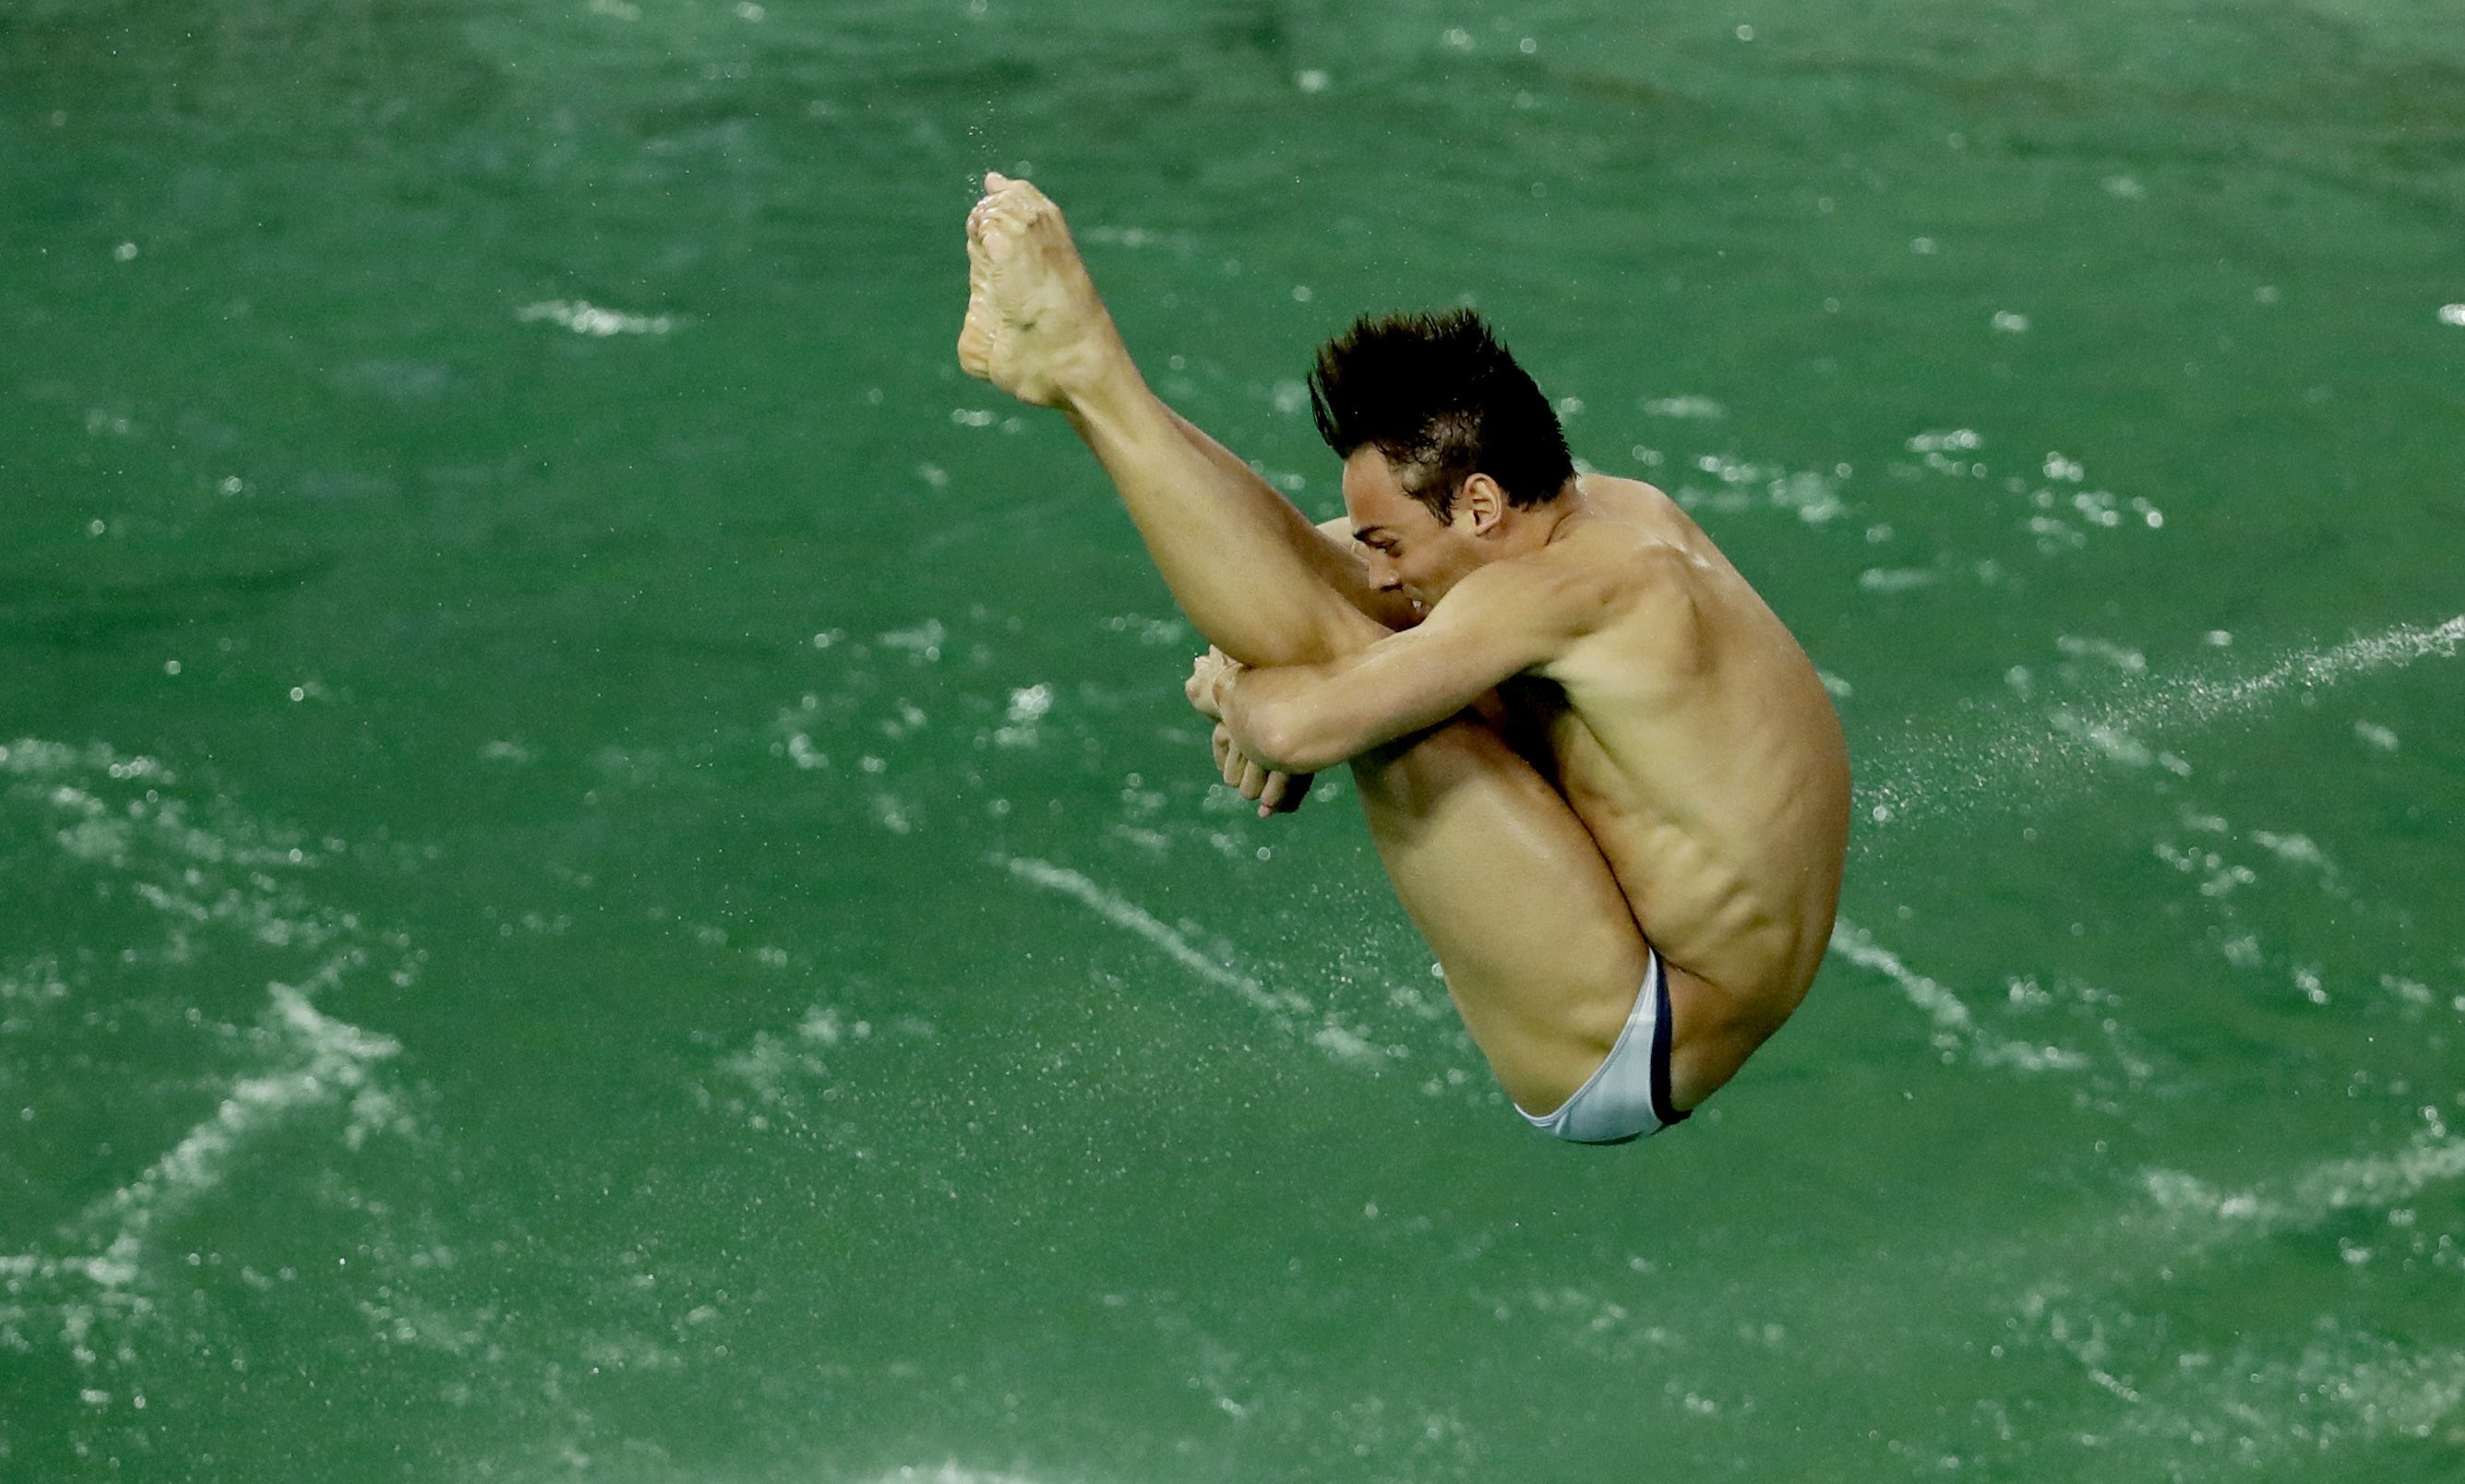 British diver Tom Daley takes part in a training session after the water in the diving pool turned green.